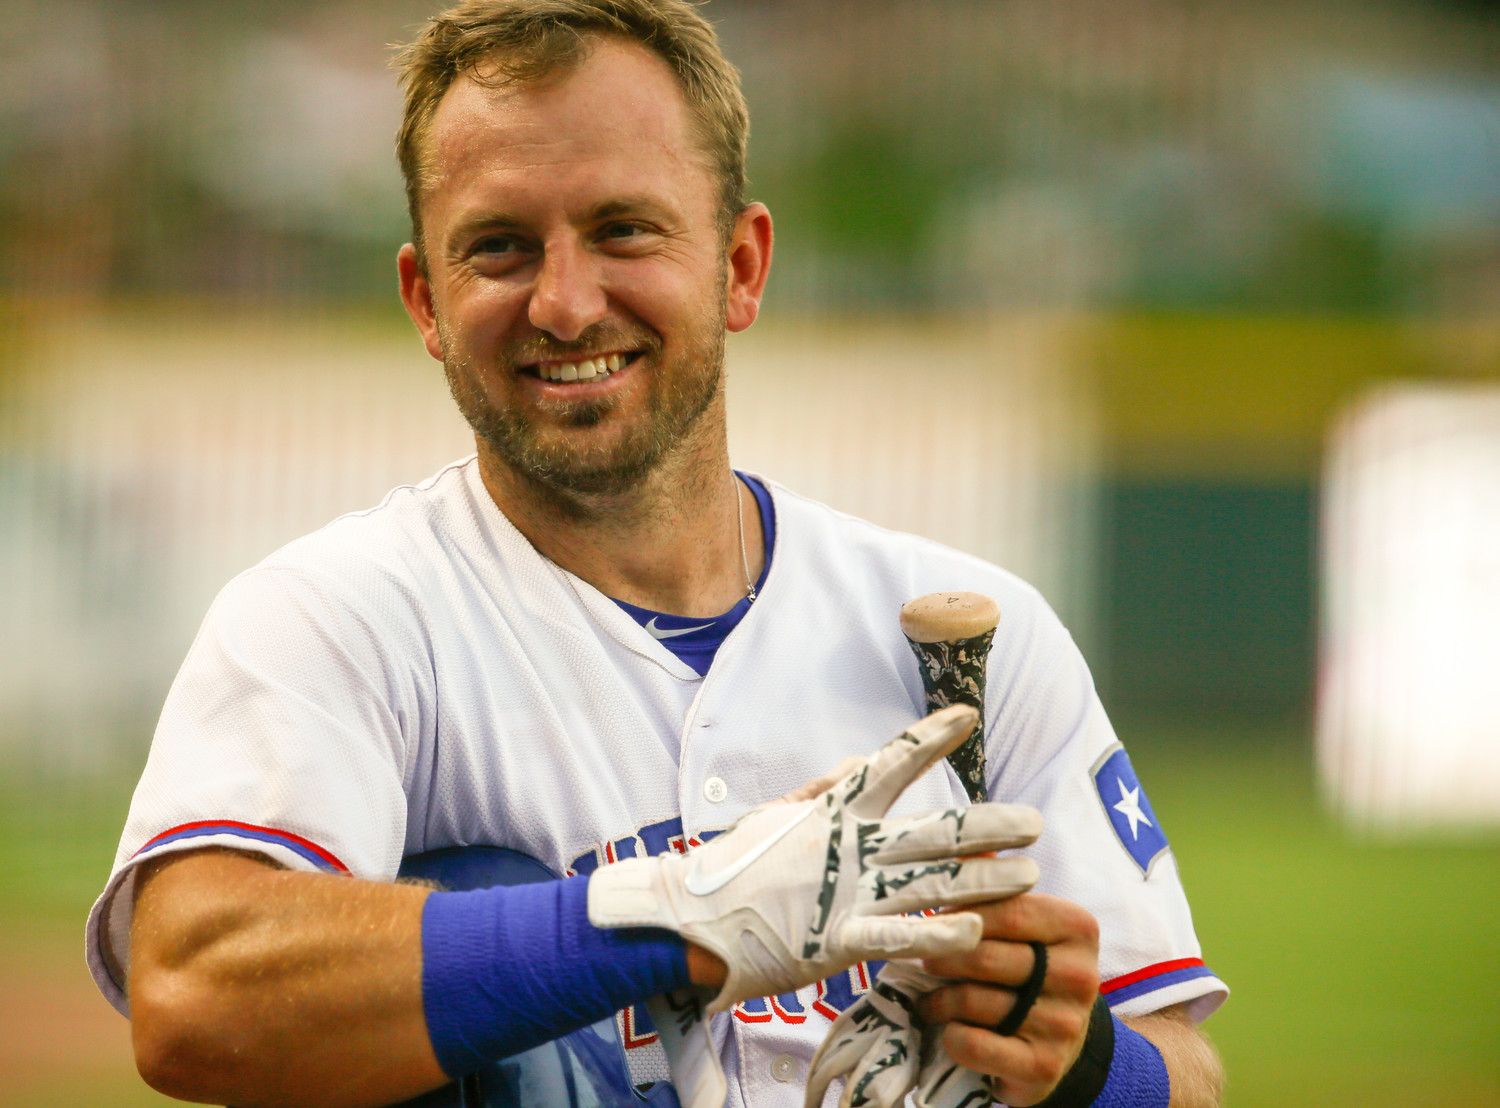 Cliff Pennington was born in Corpus Christi and went to college at Texas A&M. Now, he's with the Texas Rangers organization after a long major league career.